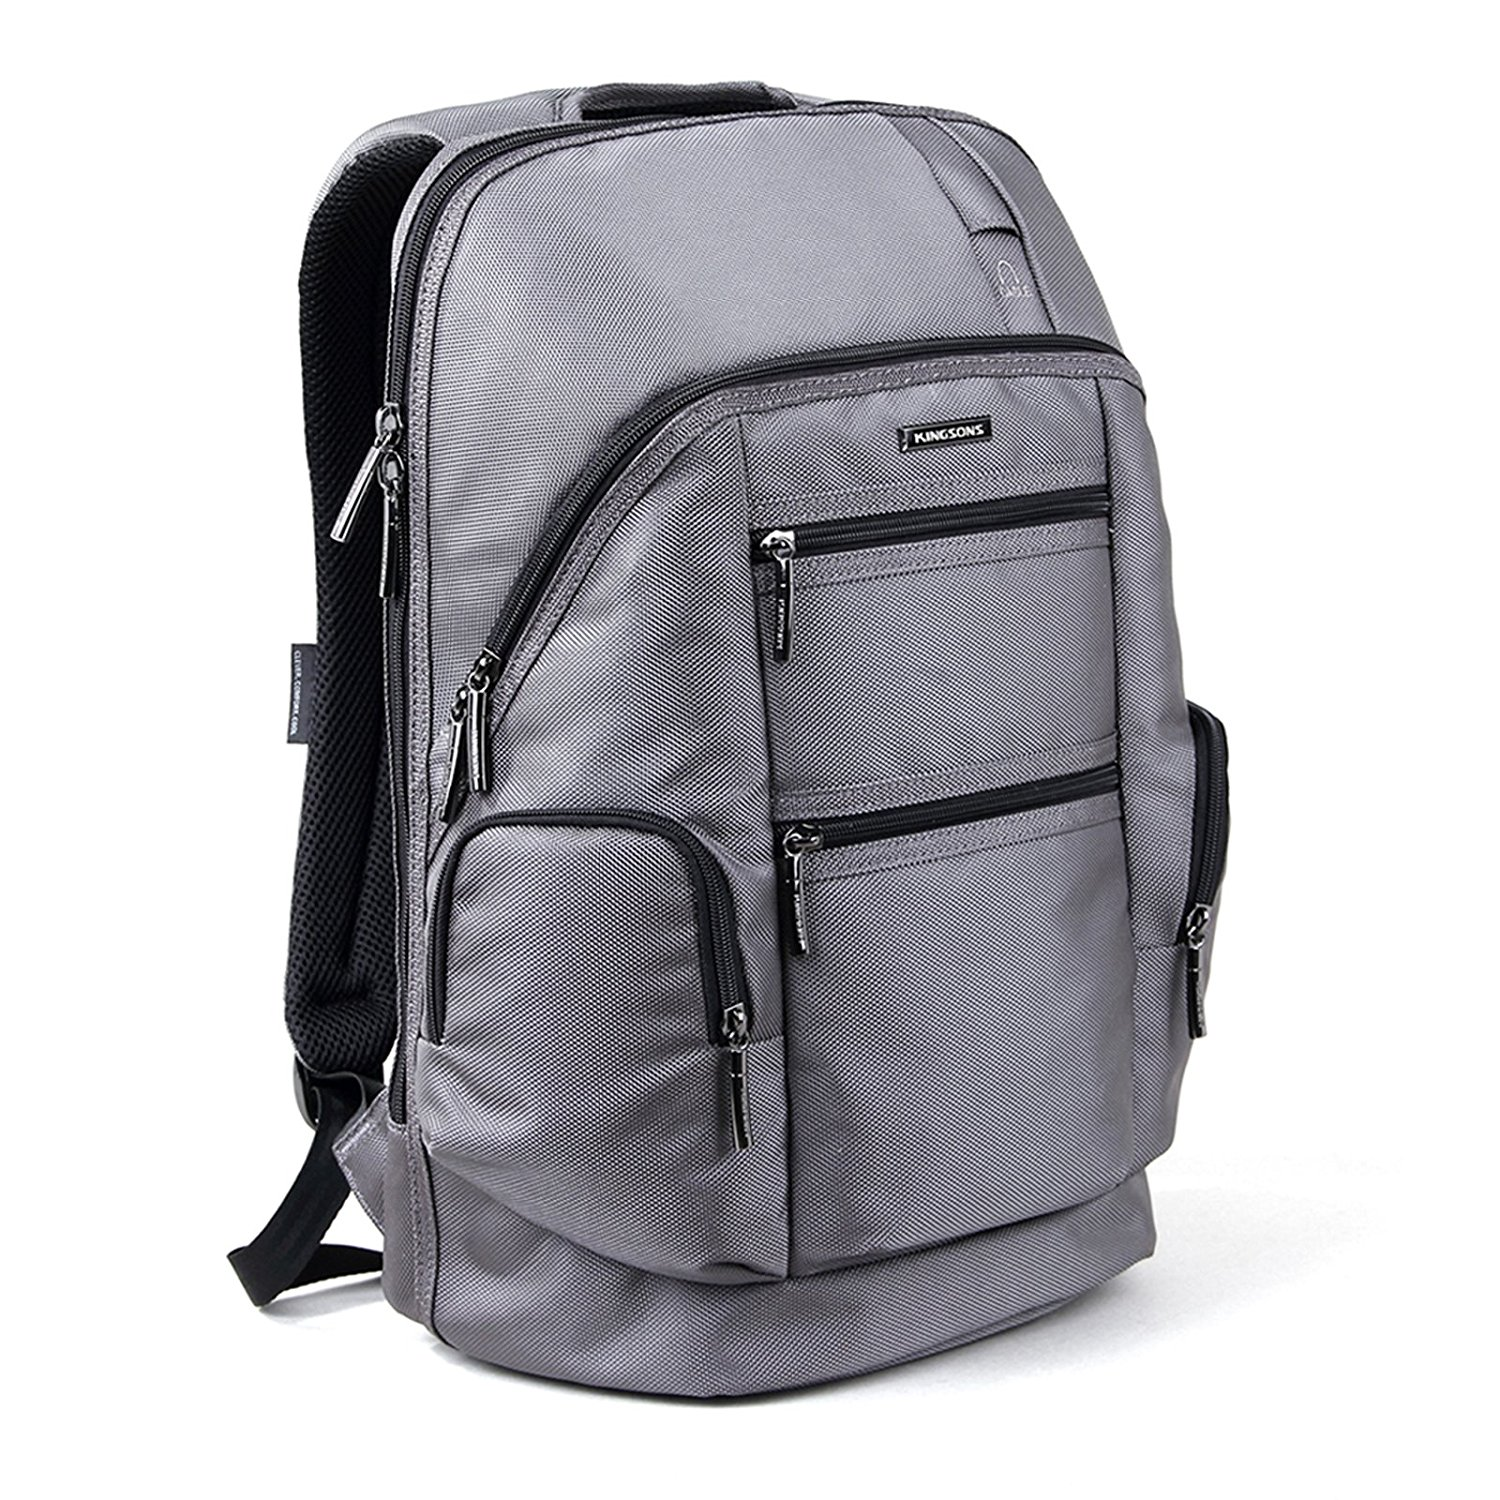 Laptop Backpack, KINGSONS 15.6 Inch Shockproof Backpack Outdoor Luggage Knapsack Hiking Camping Rucksack Computer Bag for Laptop / Notebook / MacBook / Ultrabook /Tablet - Grey